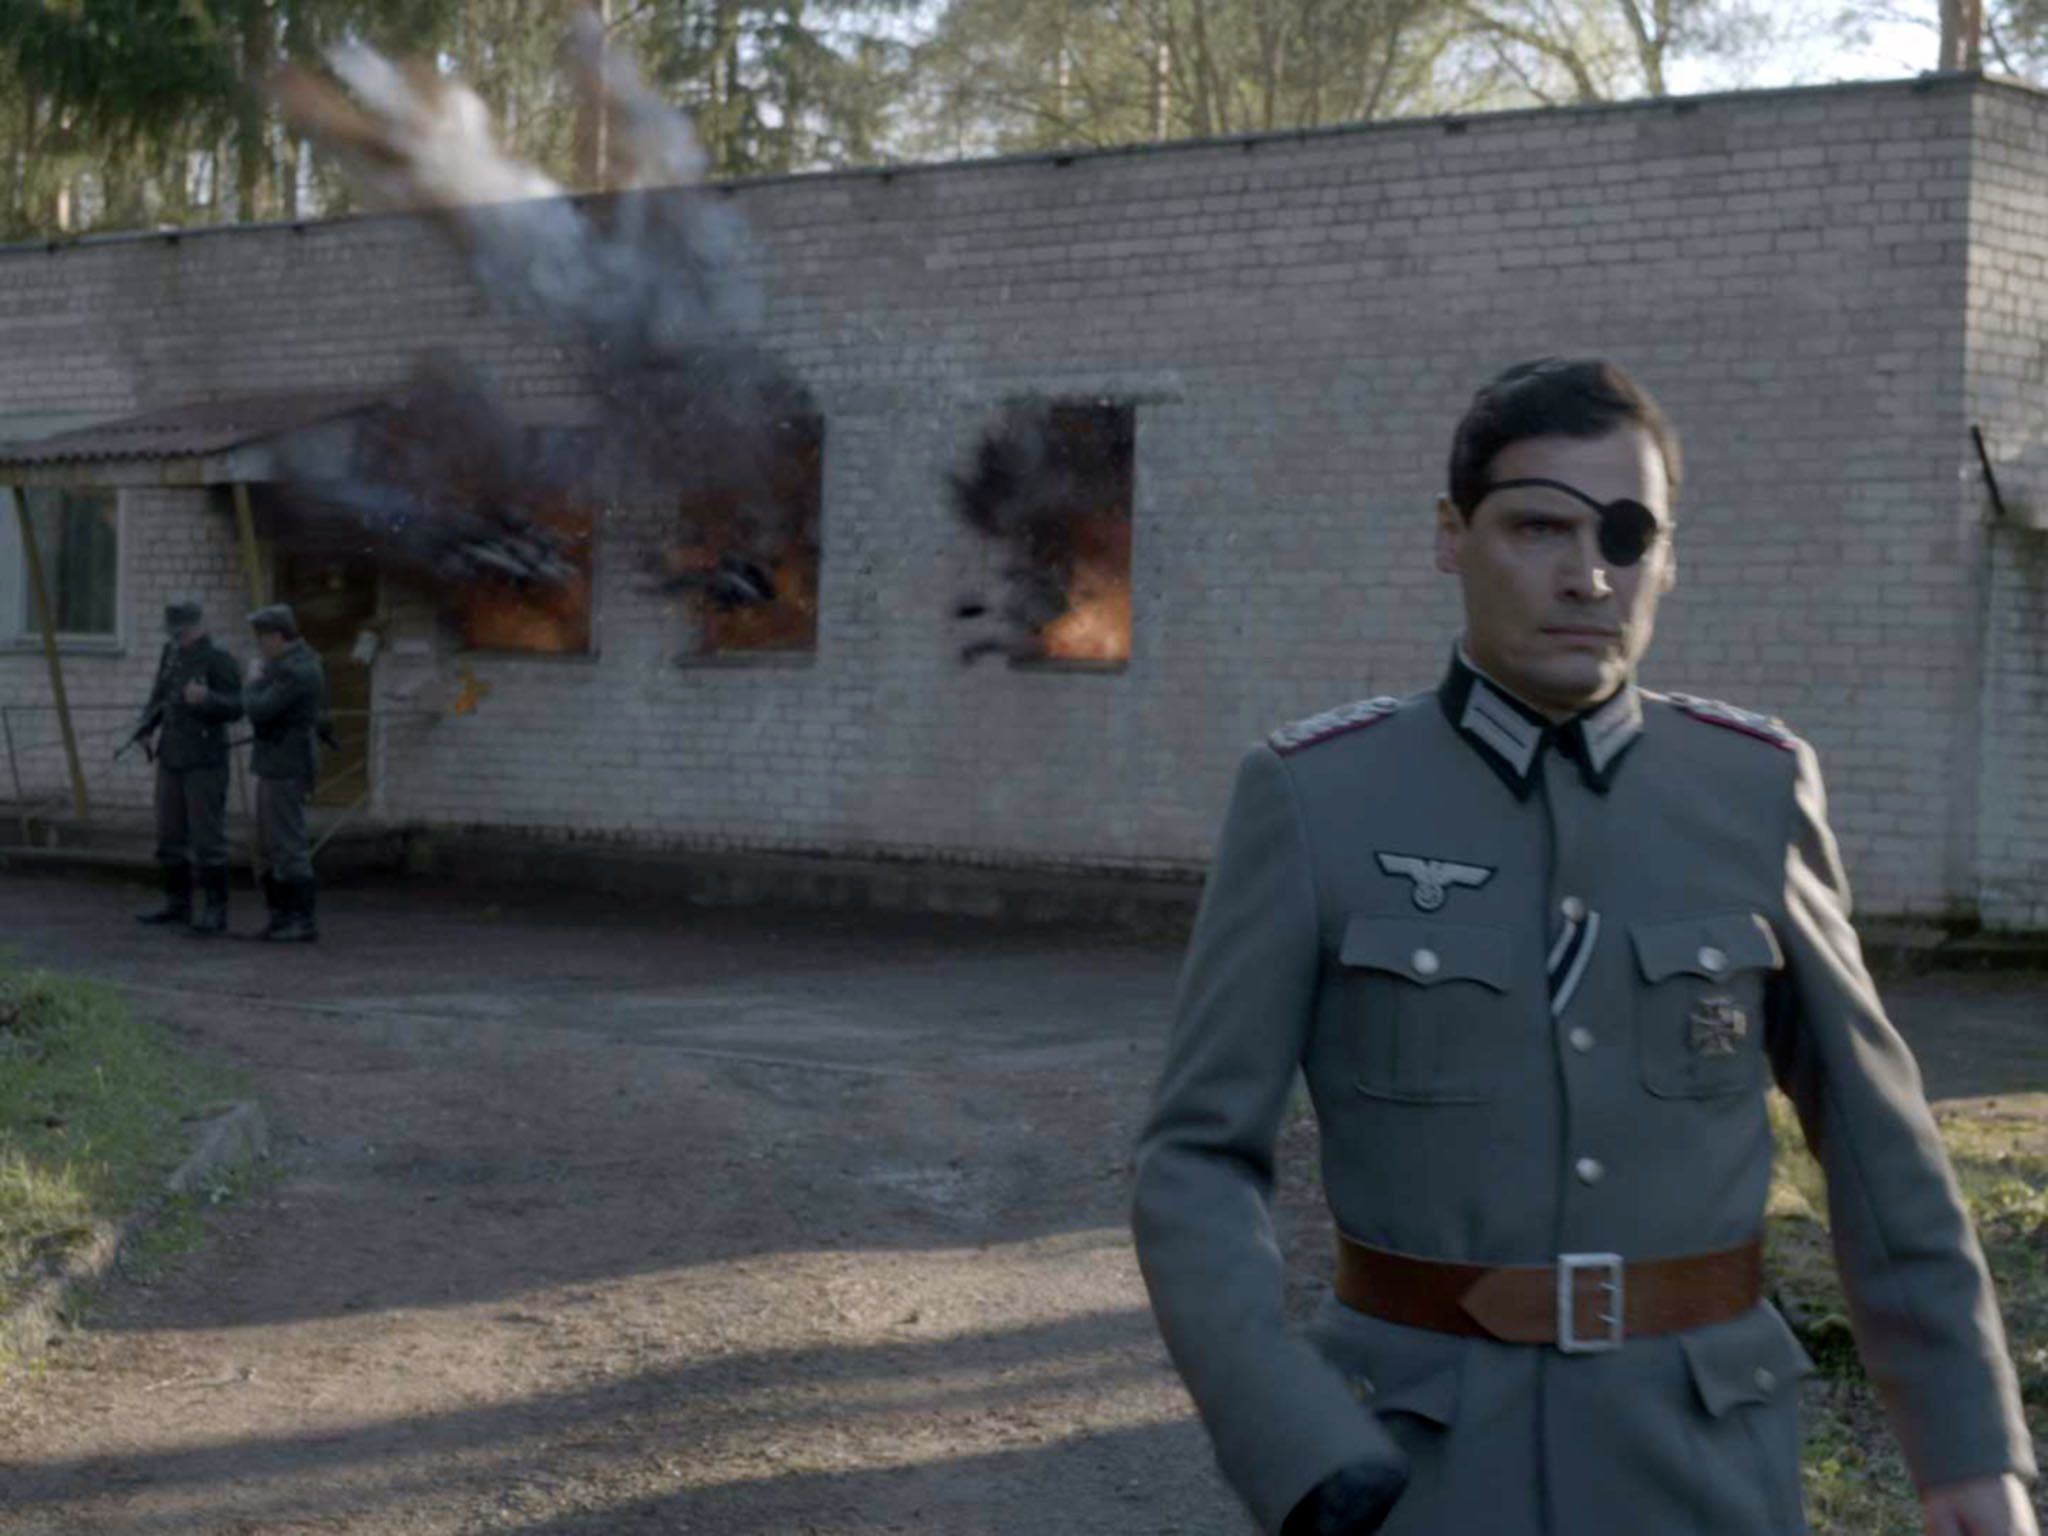 Claus von Stauffenberg walks away from the Wolf's Lair as the bomb explodes. This image is from... [Photo of the day - 十月 2016]